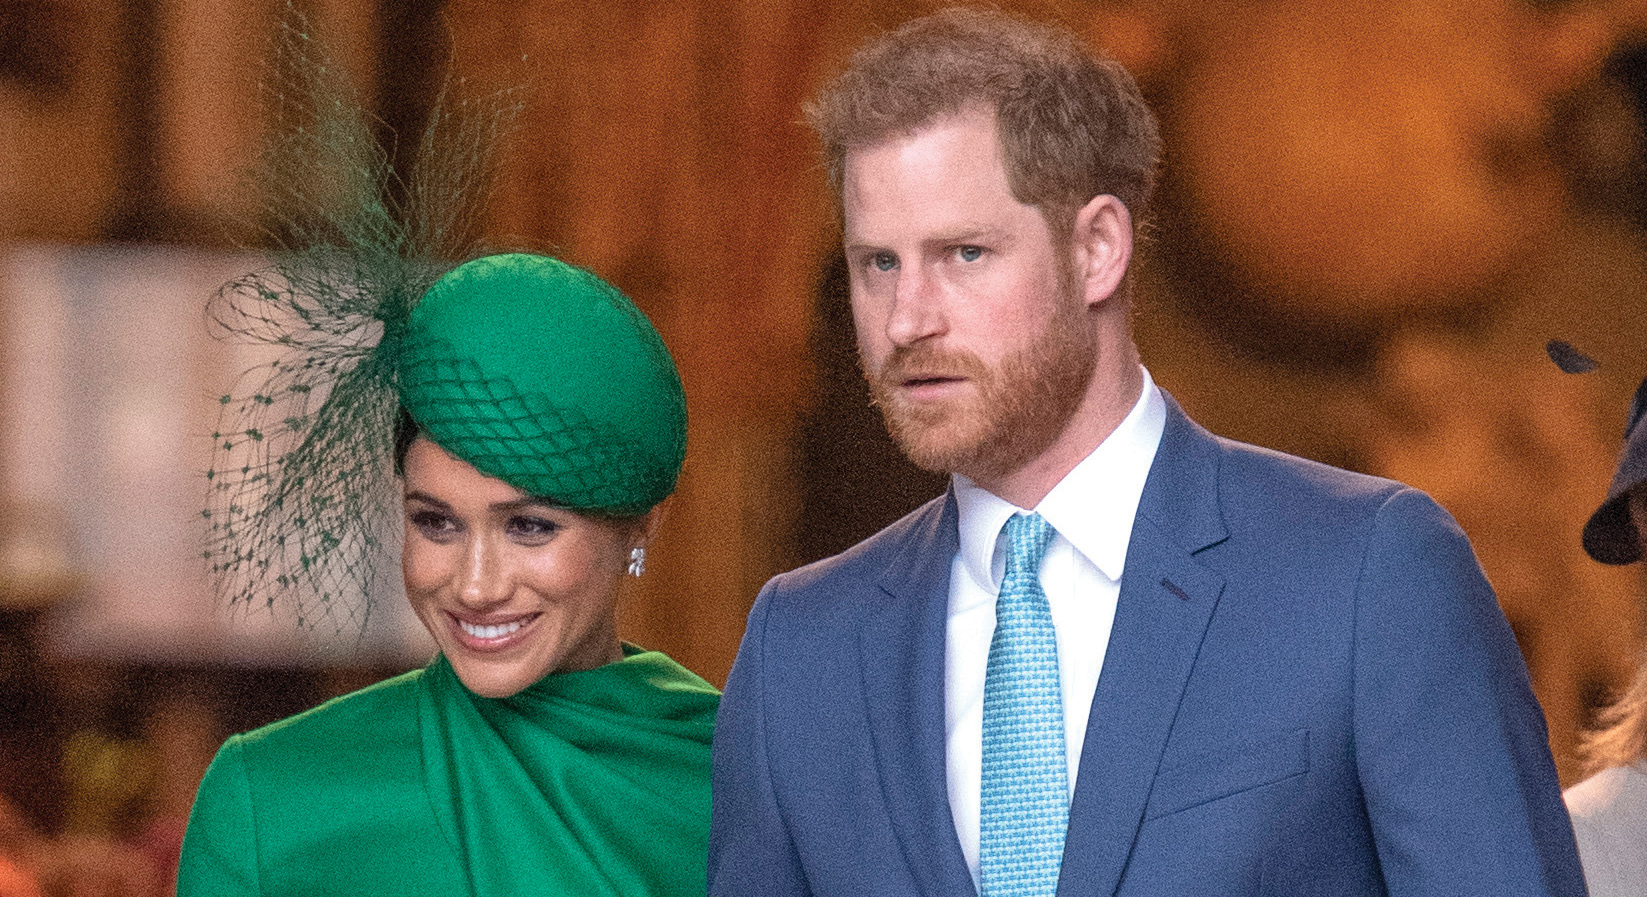 Meghan Markle and Prince Harry 'fearful for future,' says royal expert